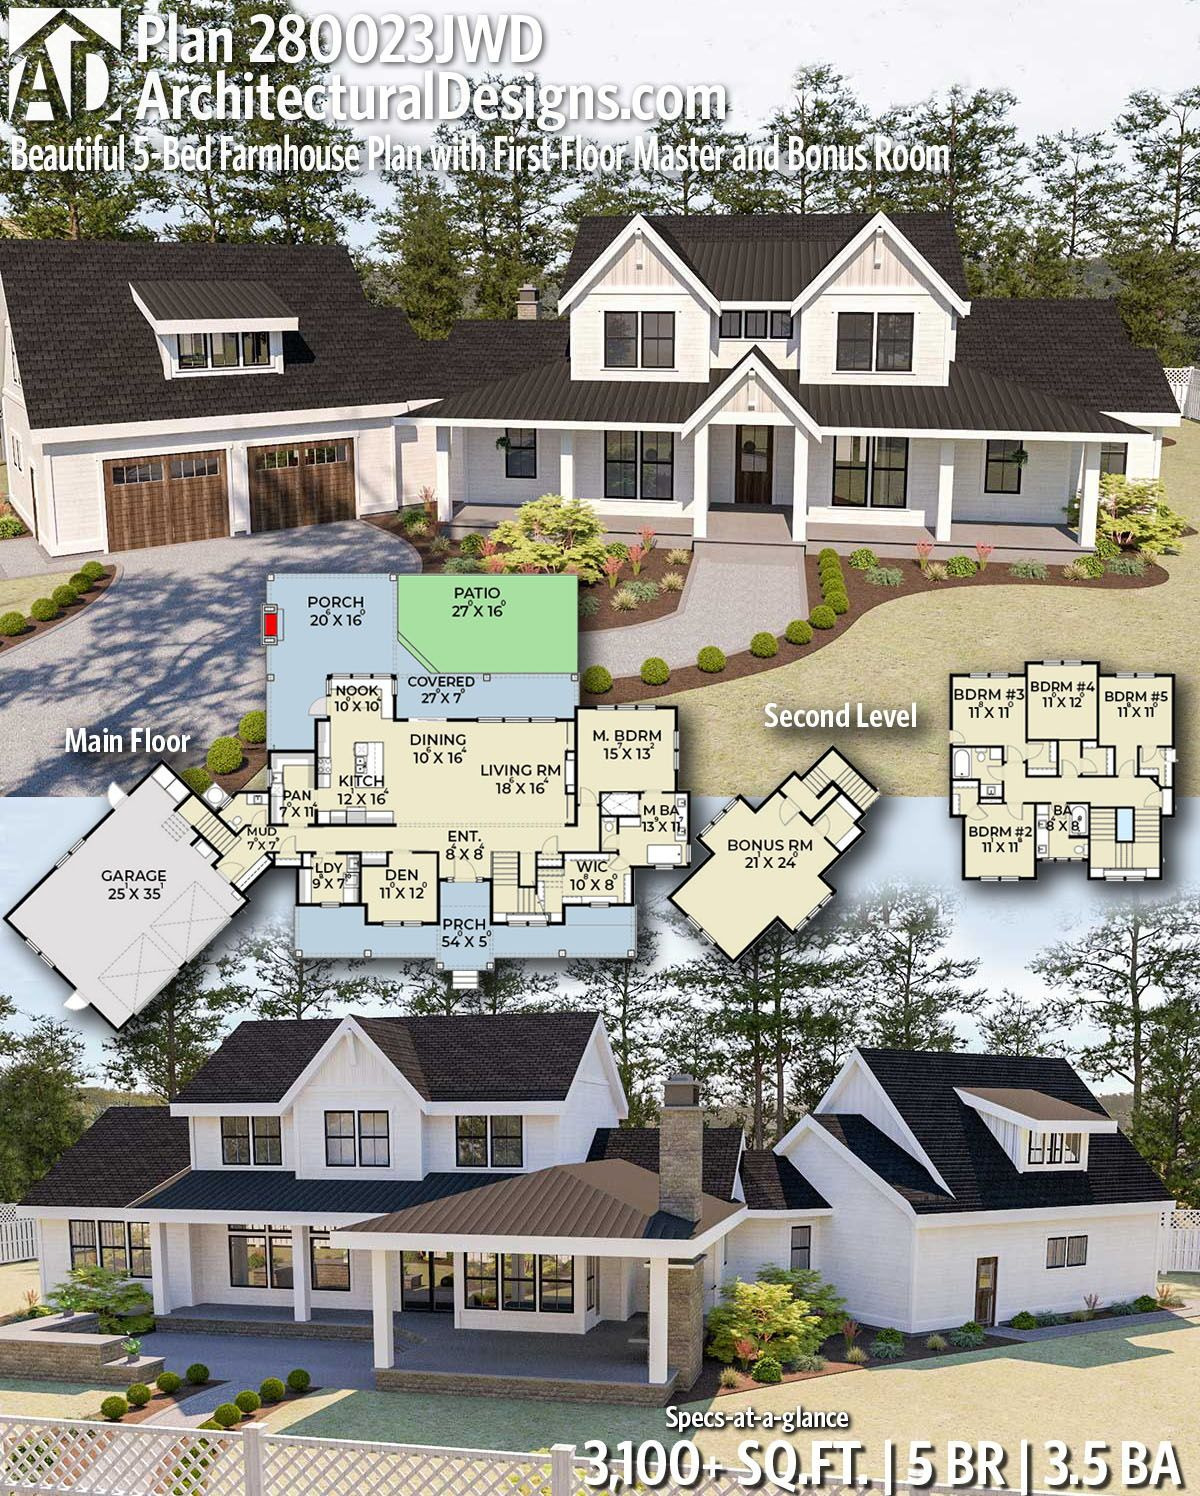 100 000 Square Foot House Awesome Plan Jwd Beautiful 5 Bed Modern Farmhouse Plan with